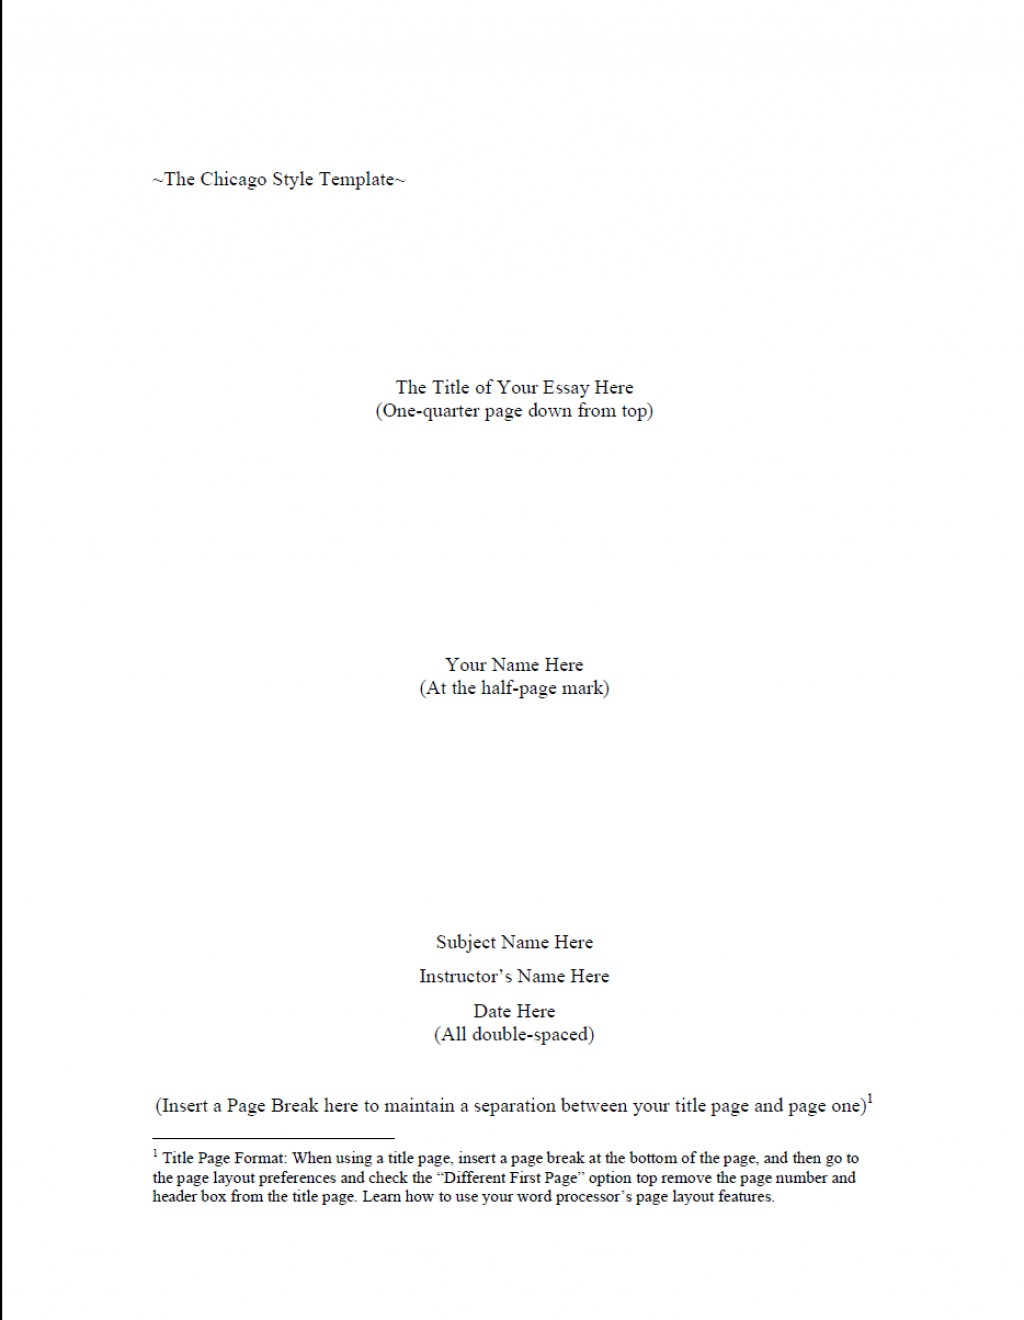 001 Chicago Style Research Paper Guidelines Paper1 Wondrous Large